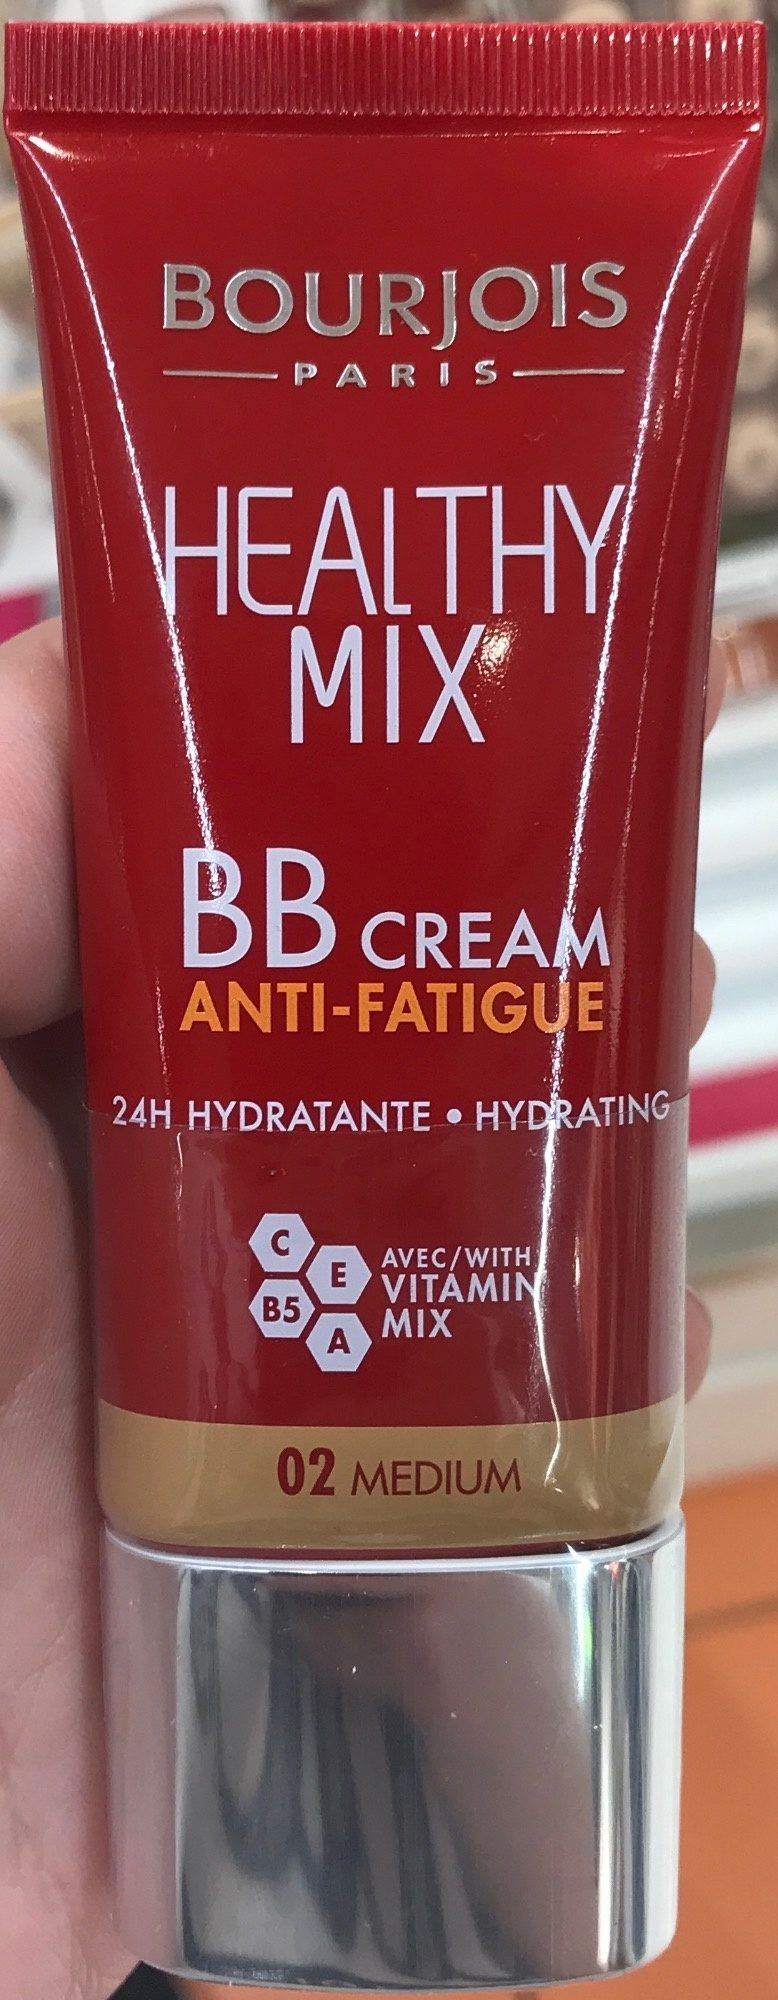 Healthy Mix BB Cream anti-fatigue 24H 02 Medium - Product - fr